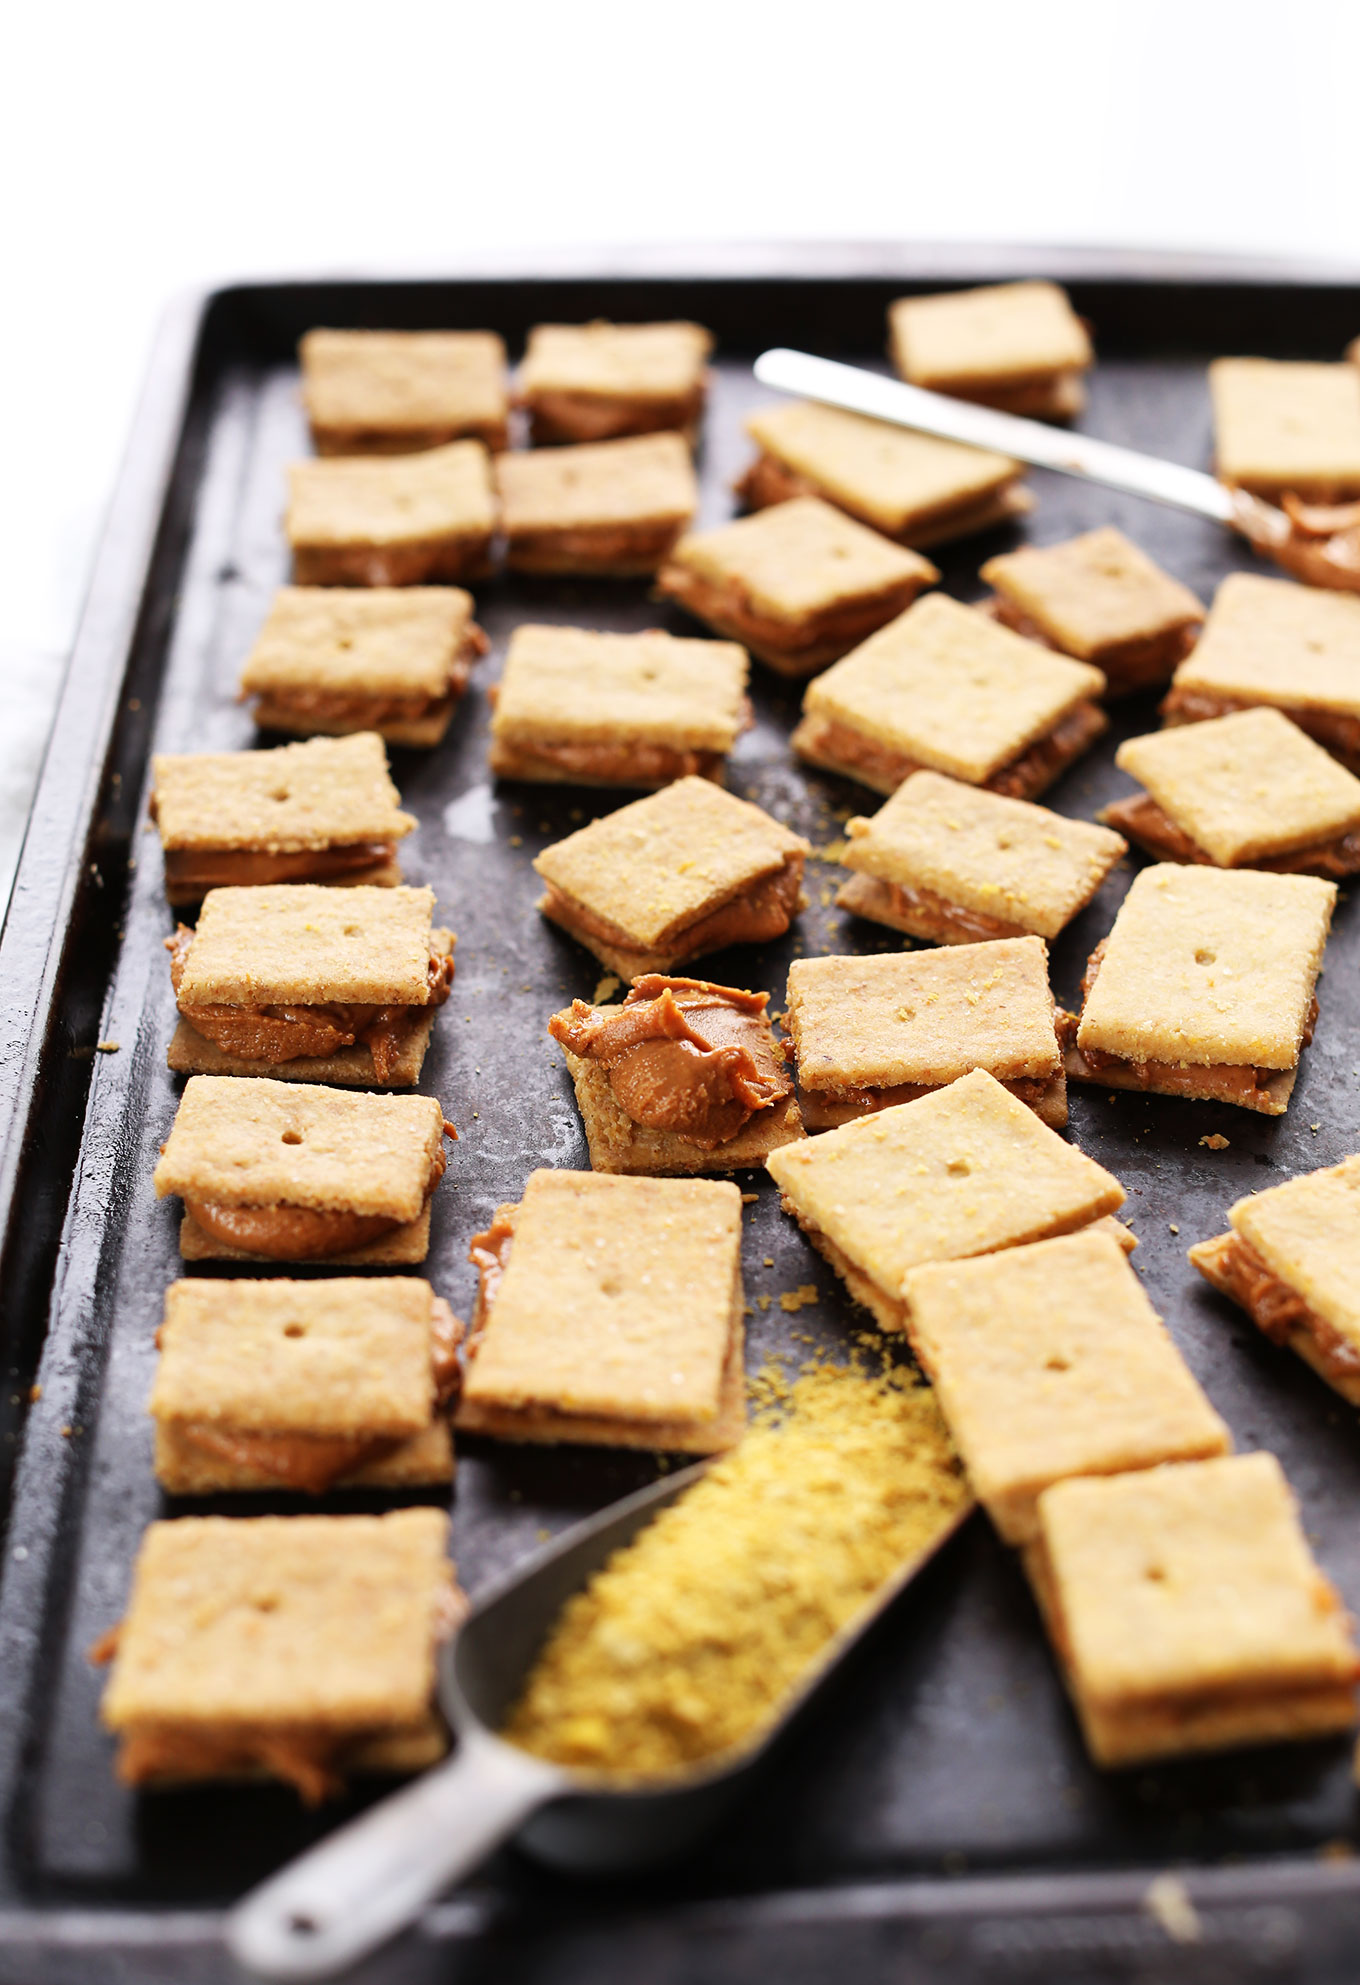 Baking sheet filled with homemade gluten-free vegan Peanut Butter Cheese Crackers